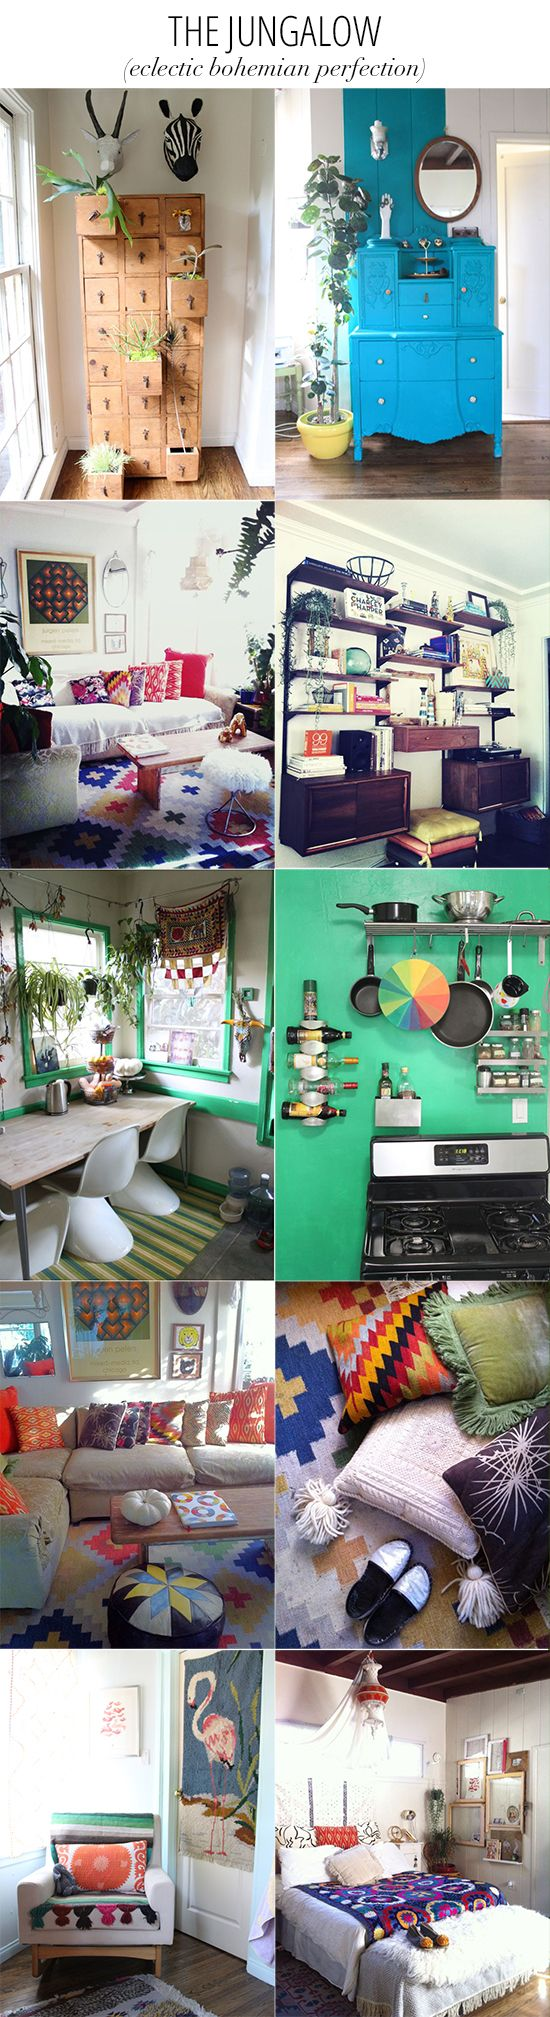 my Jungalow featured on Inspired to Share: Room Photos, Living Spaces, Colorme Rooms, Cool Ideas, Small Spaces, N Inside Spaces Living, Boho Kitchen Ideas, Justina Blakeney